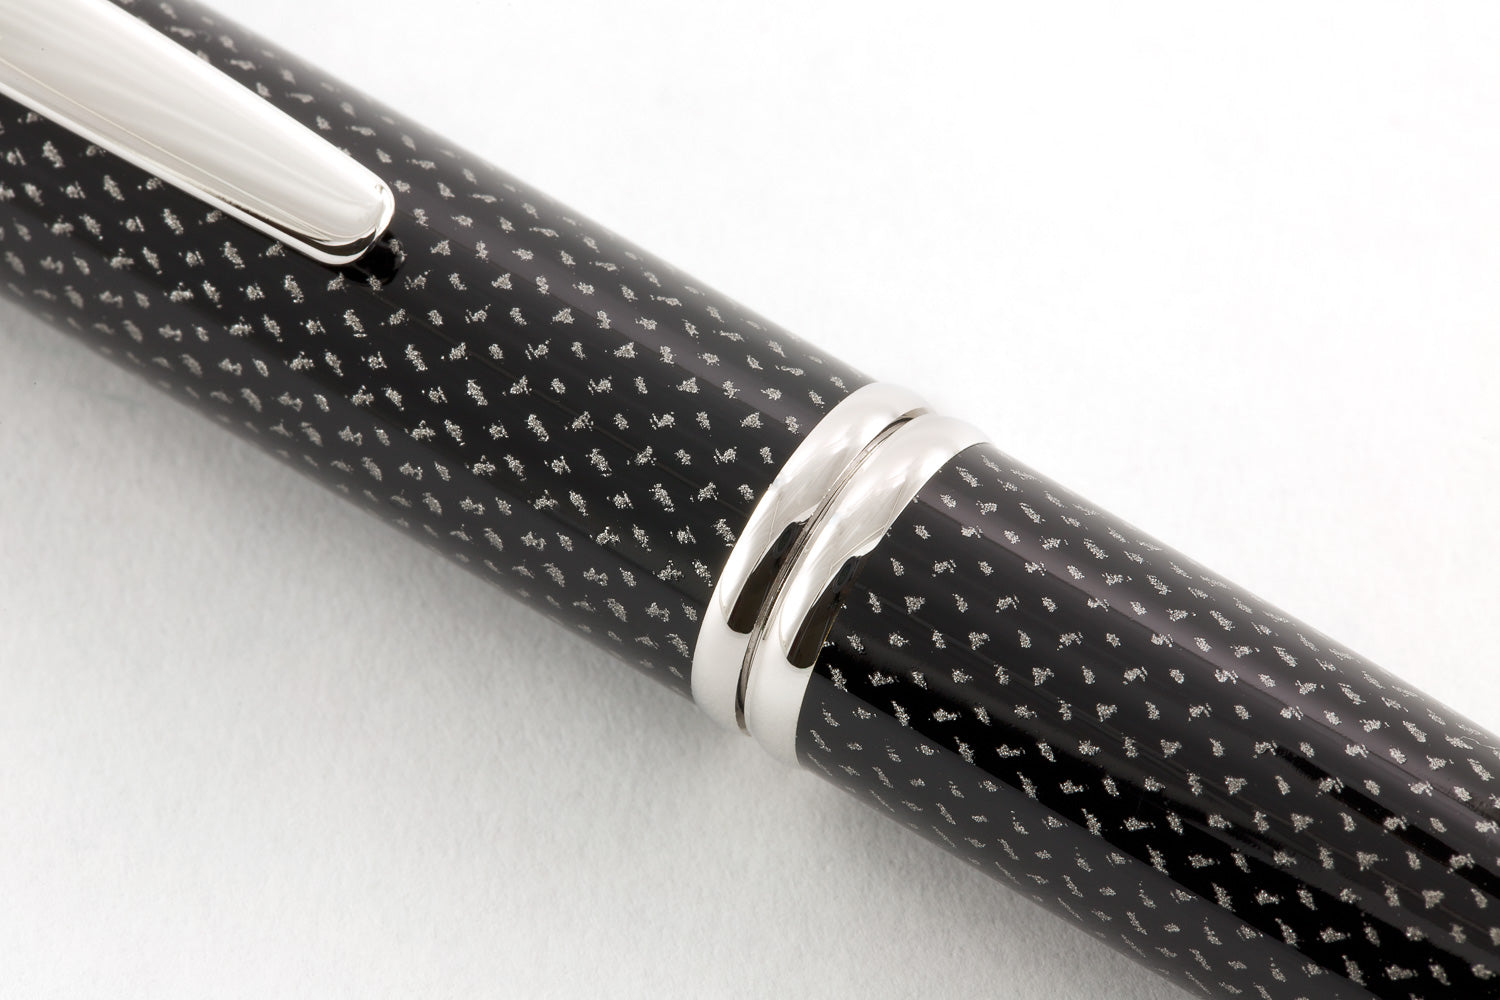 Pilot Vanishing Point Fountain Pen - Black Carbonesque